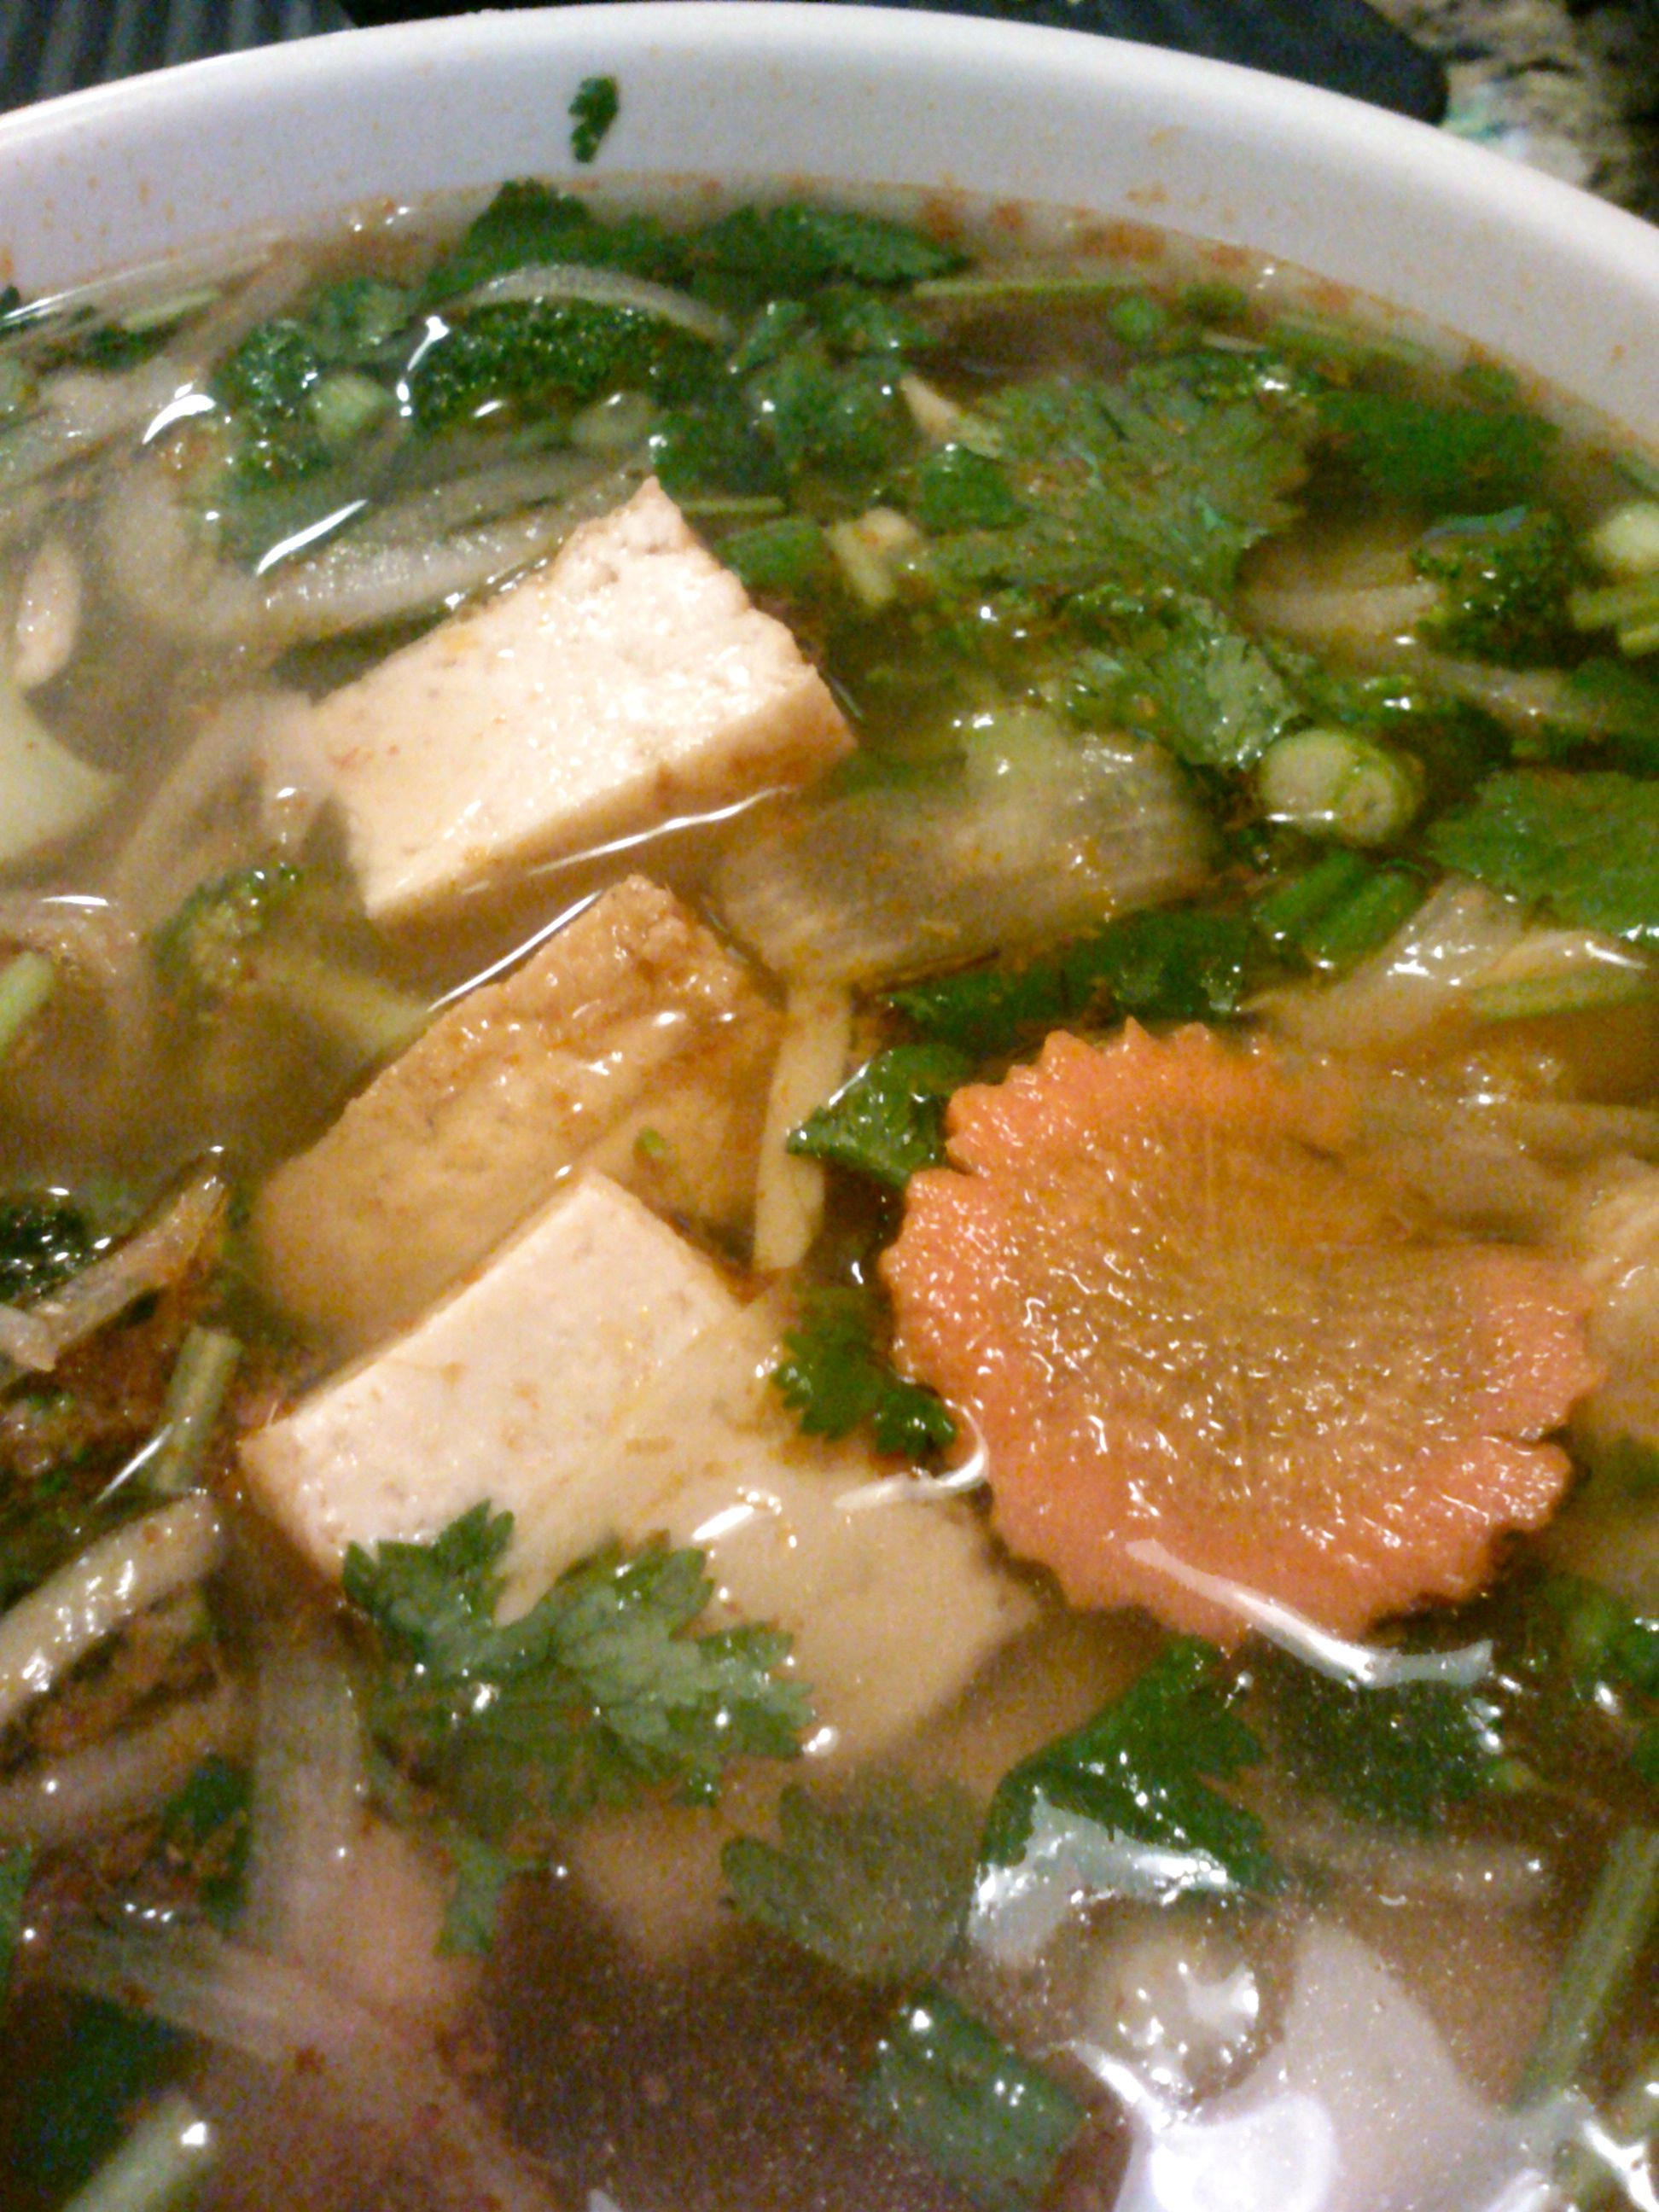 Saigon Noodle House In Birmingham Al Has Several Vegetarian Broth Pho Choices And Great Vegetarian Spring Rolls This Soup I